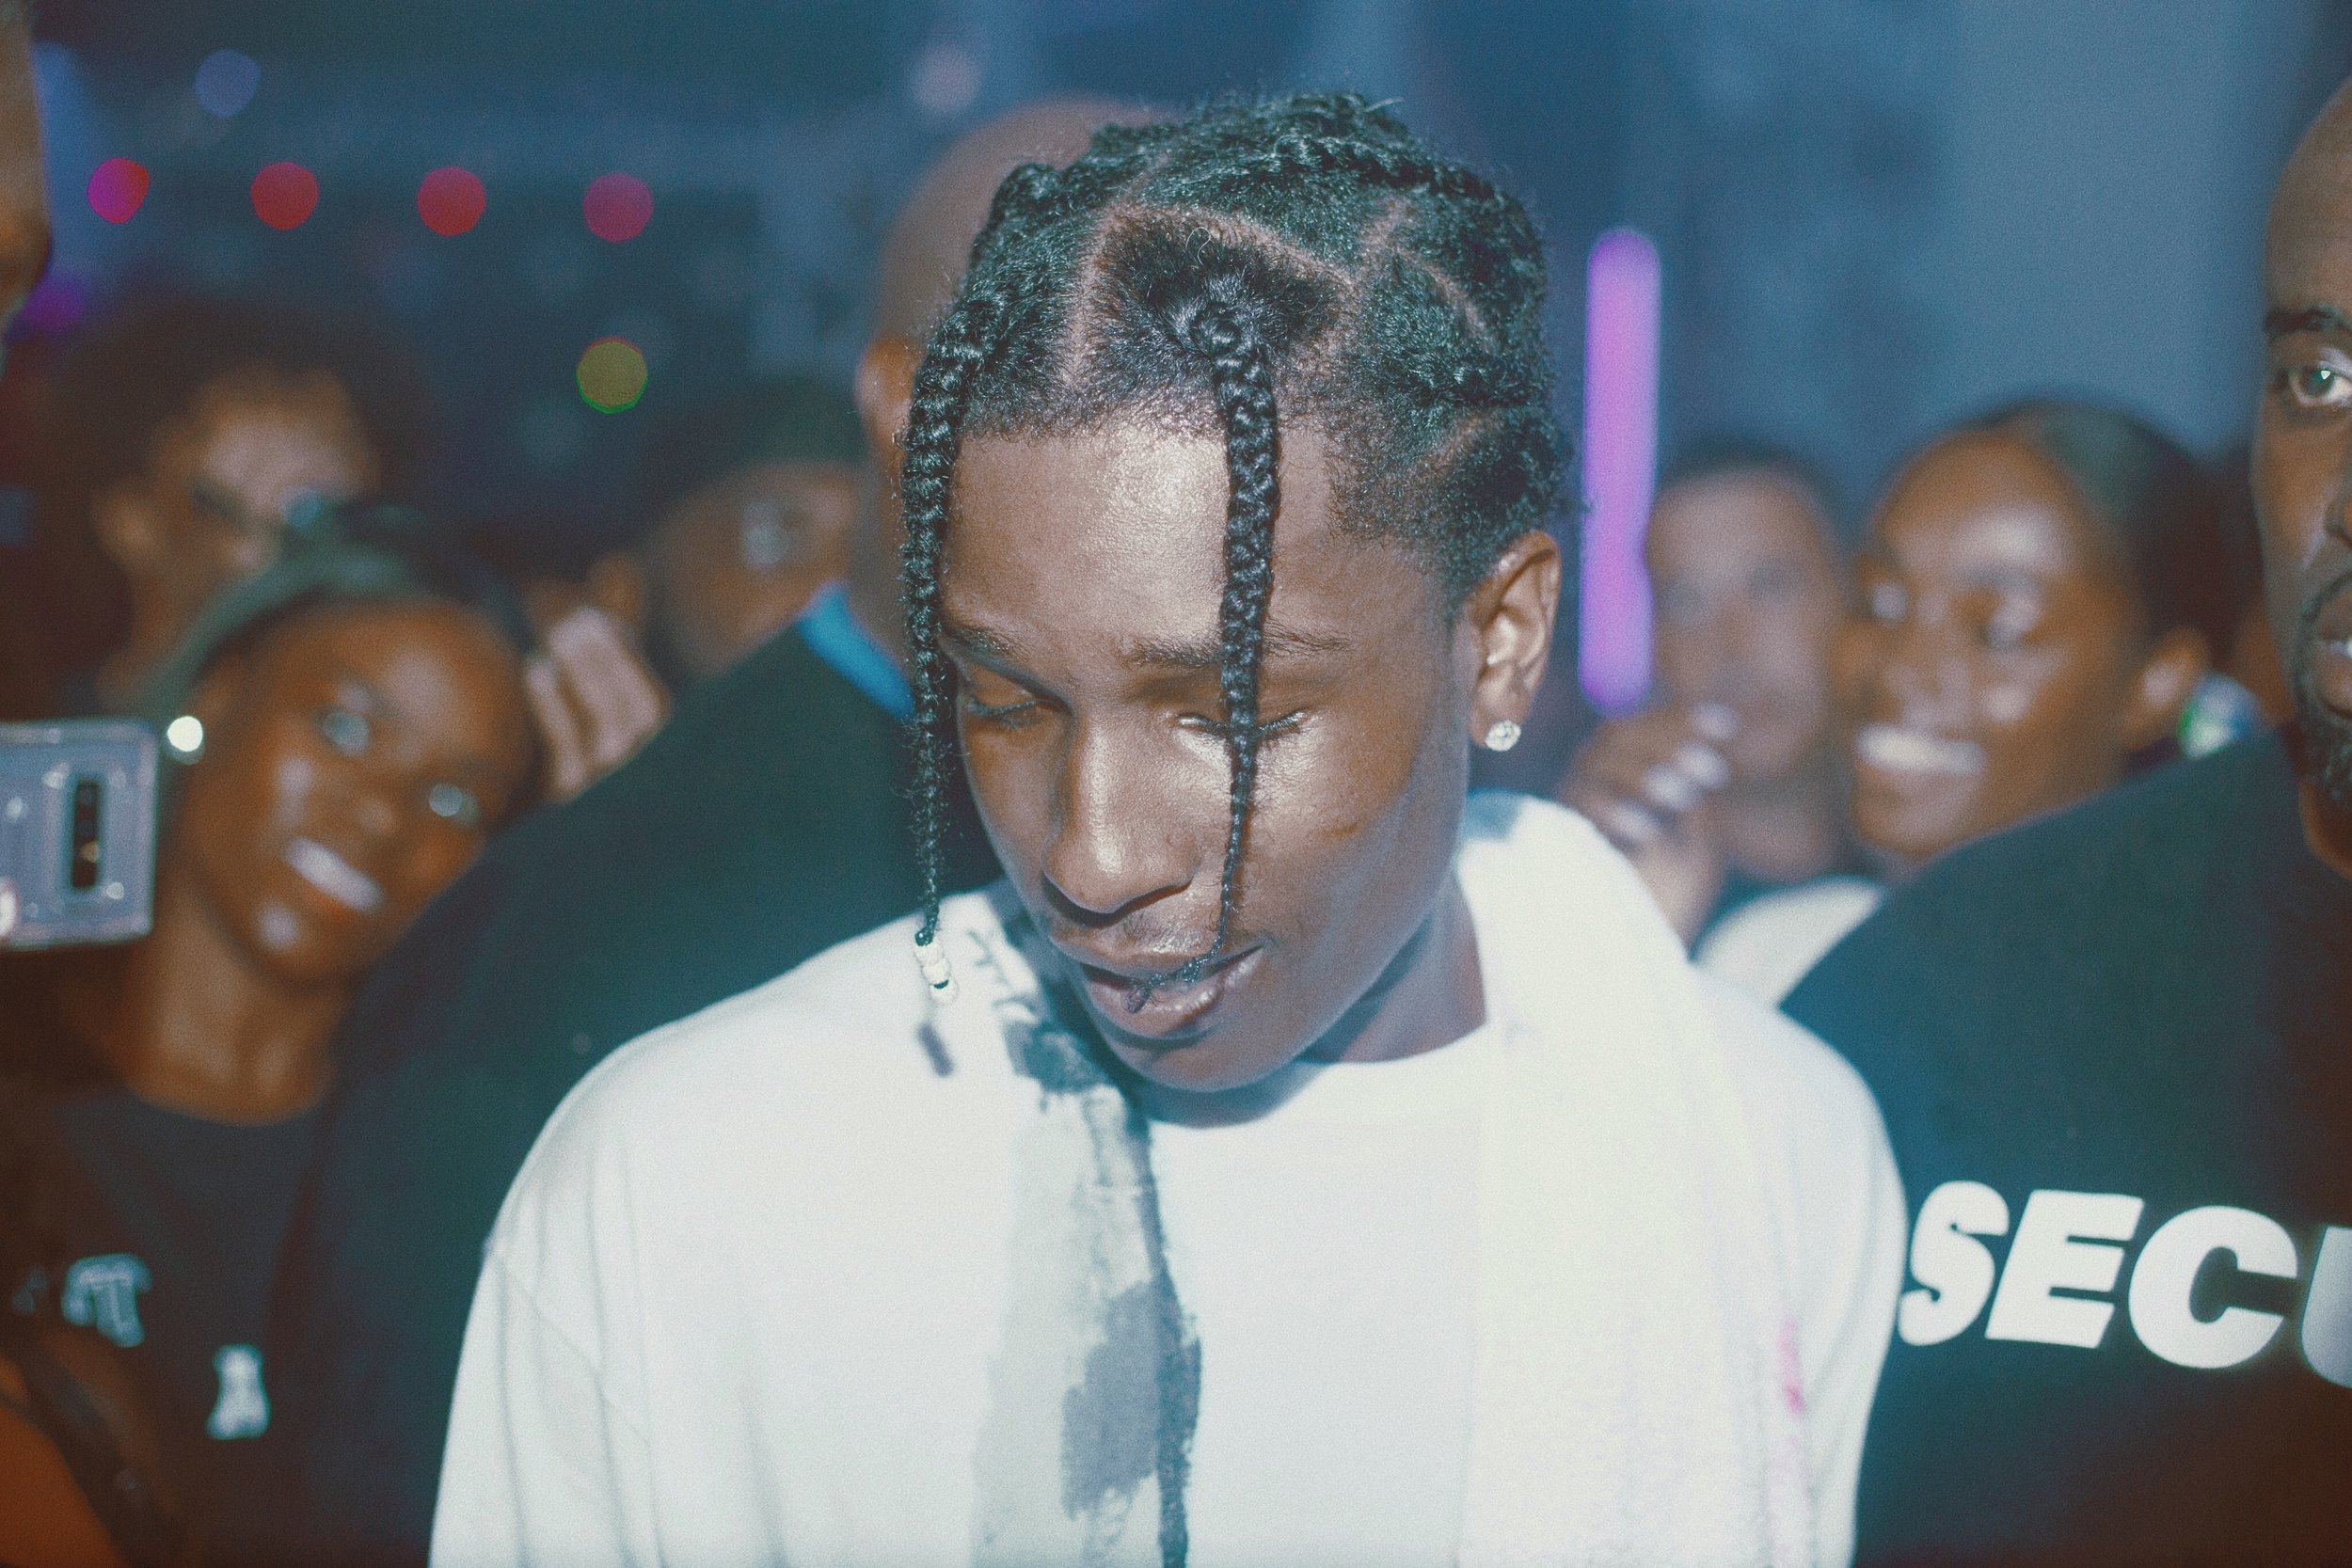 Asap Rocky @ Hurricane Rave